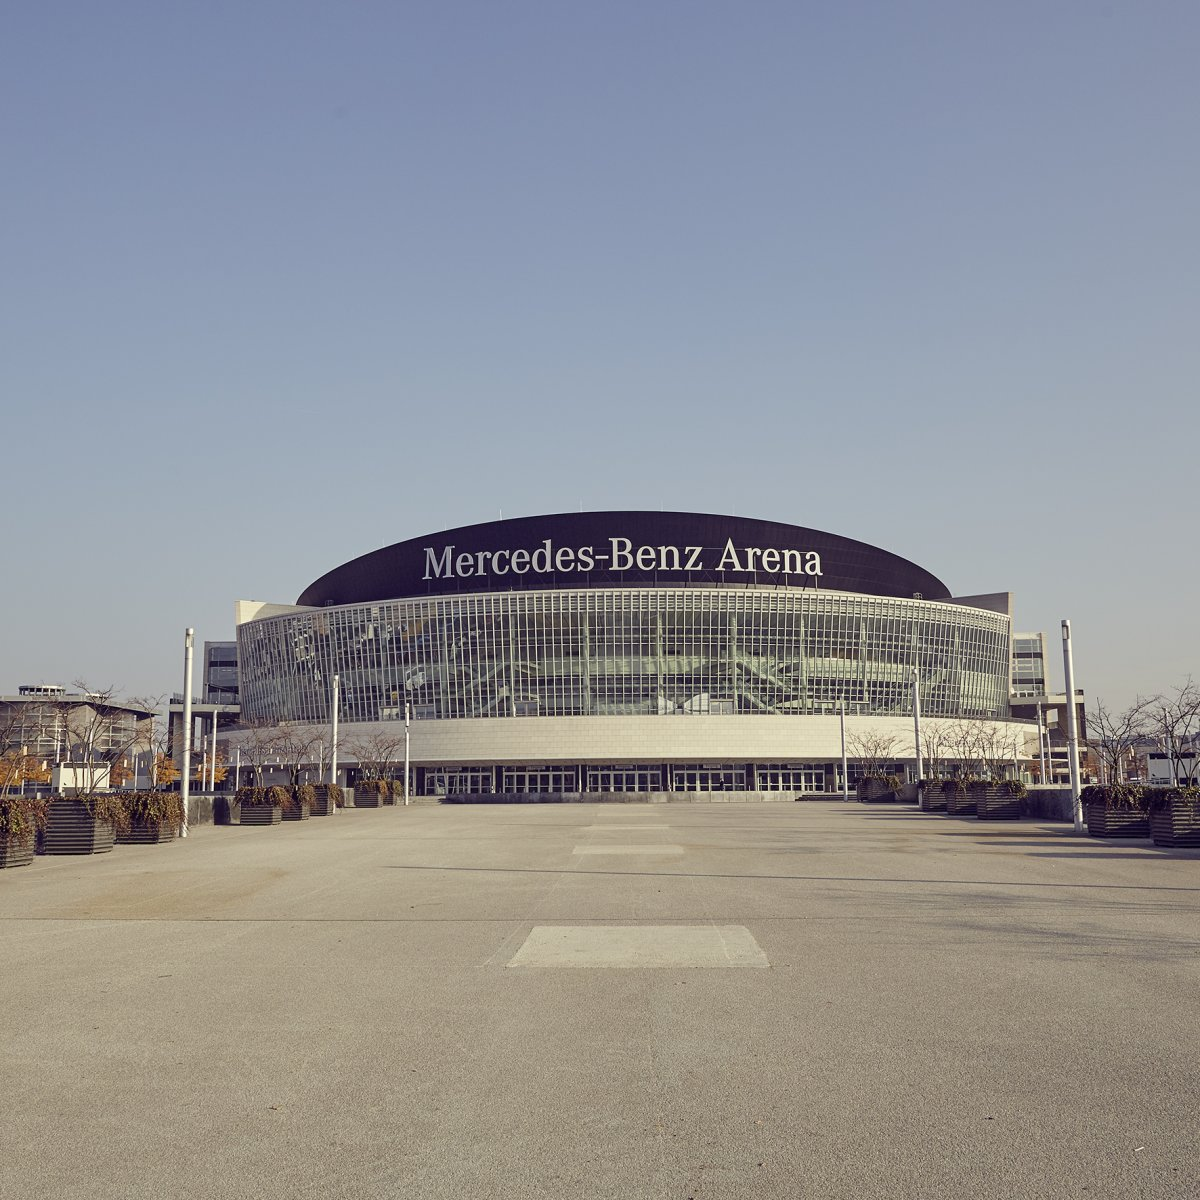 Exterior image of Mercedes Benz Arena in Berlin during the day